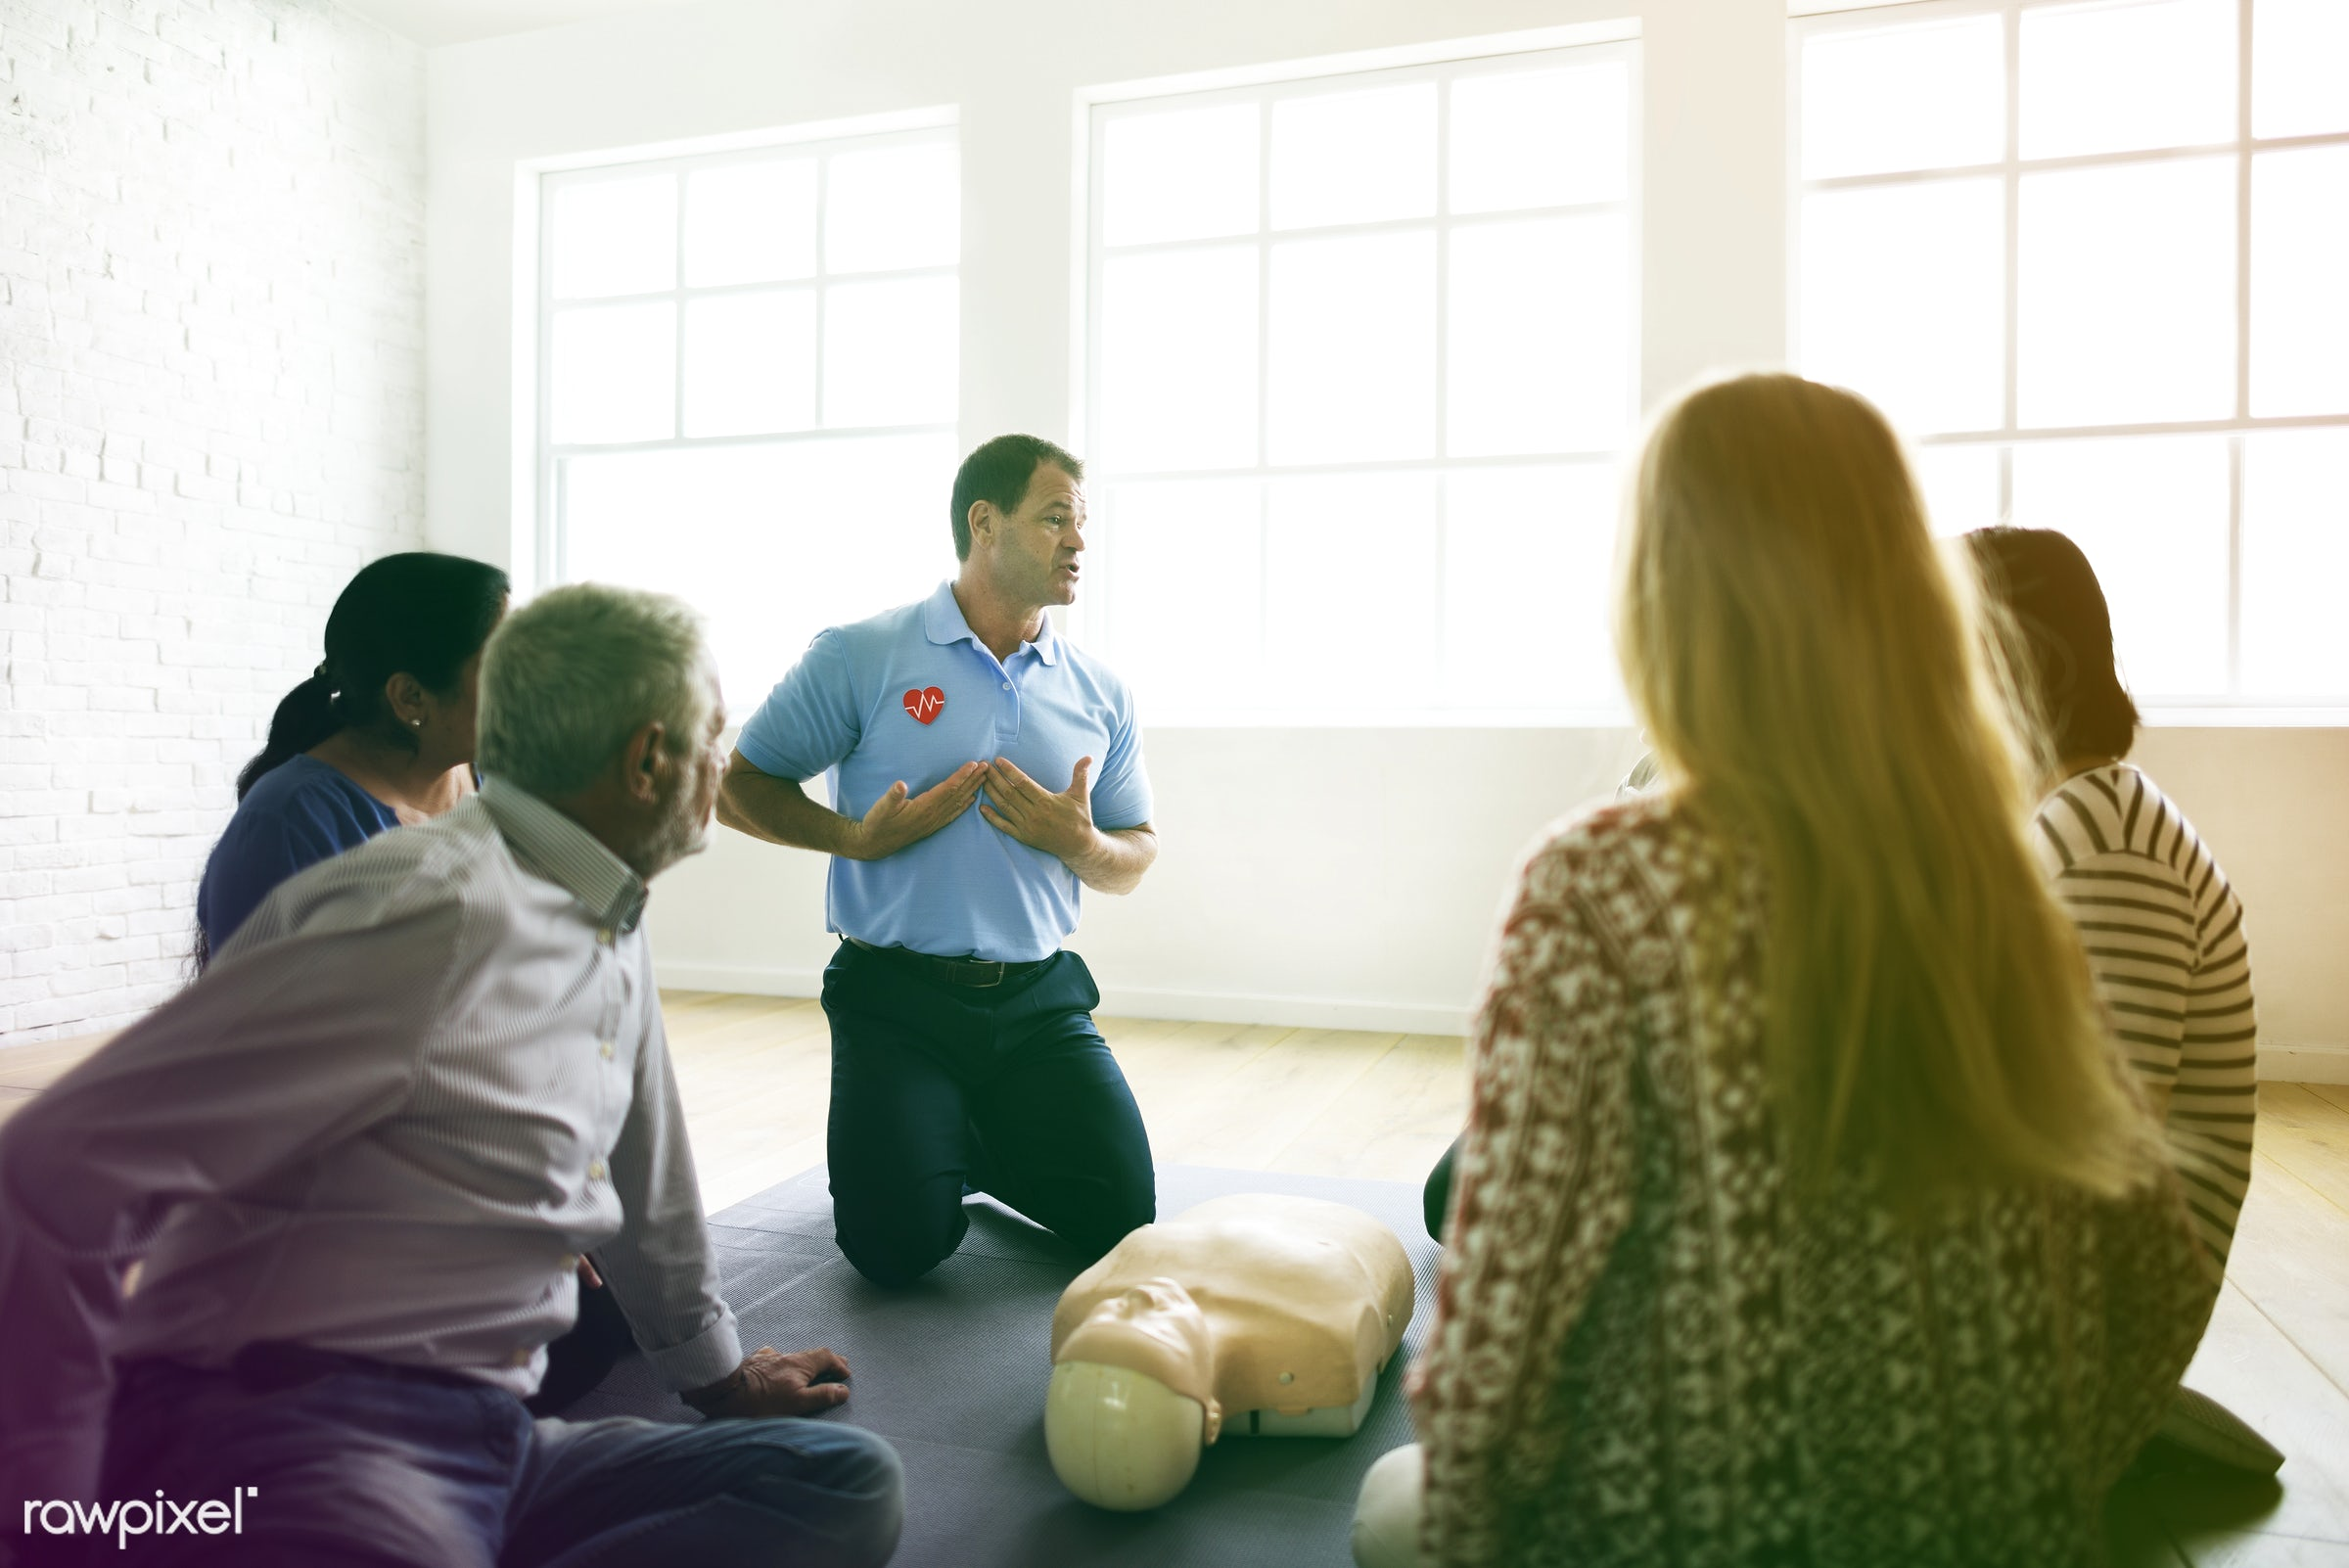 person, save, resuscitation, treatment, emergency, people, course, lifeline, help, medical, woman, event, lifestyle,...